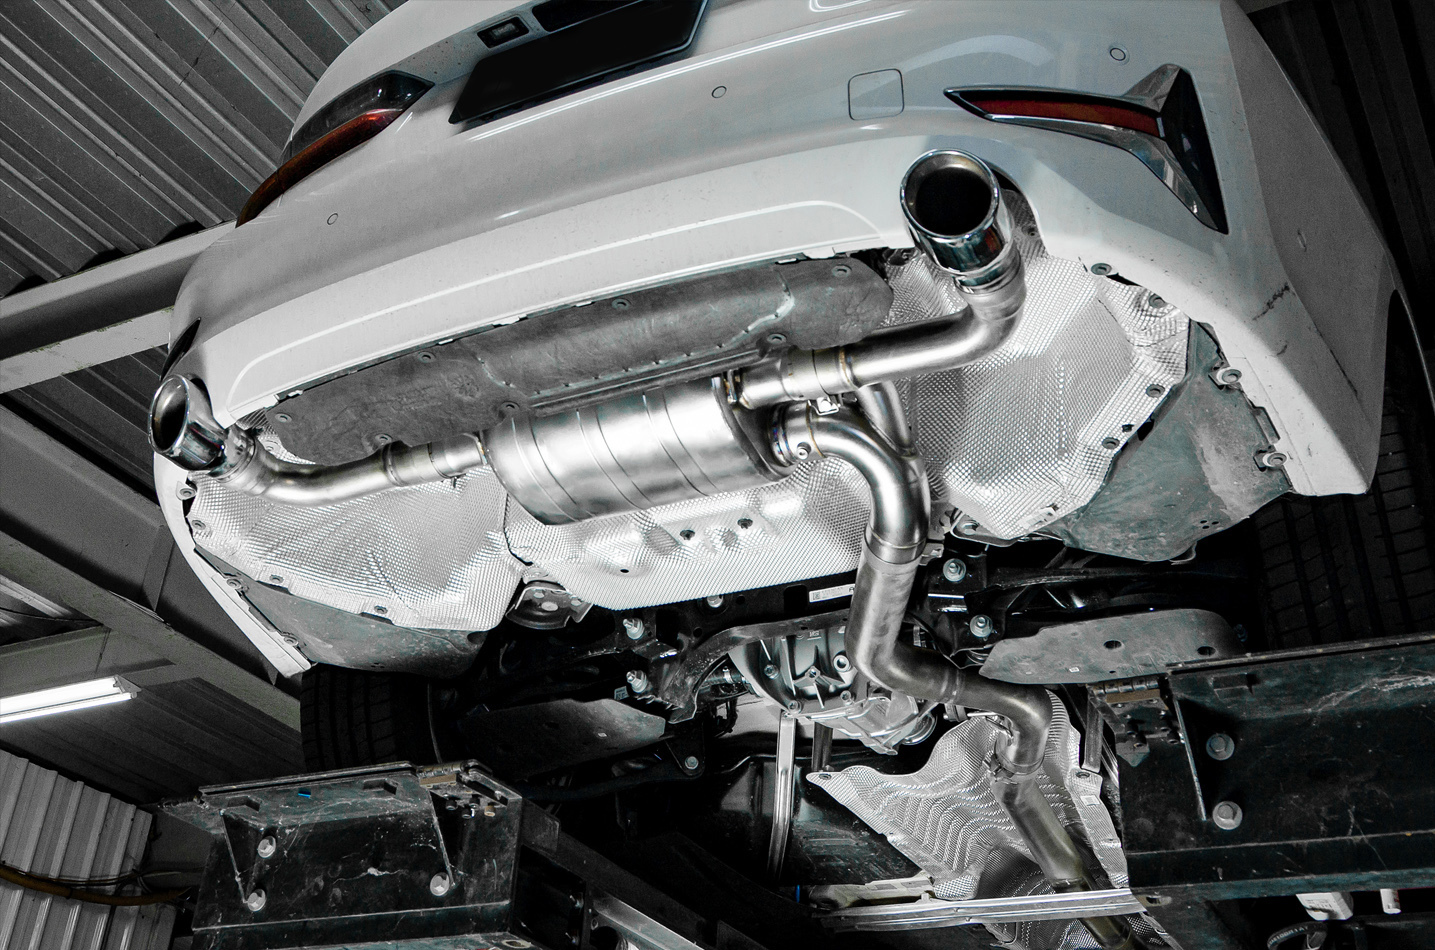 IPE exhaust system for BMW 320i/325i/330i B48 (G20/G21)